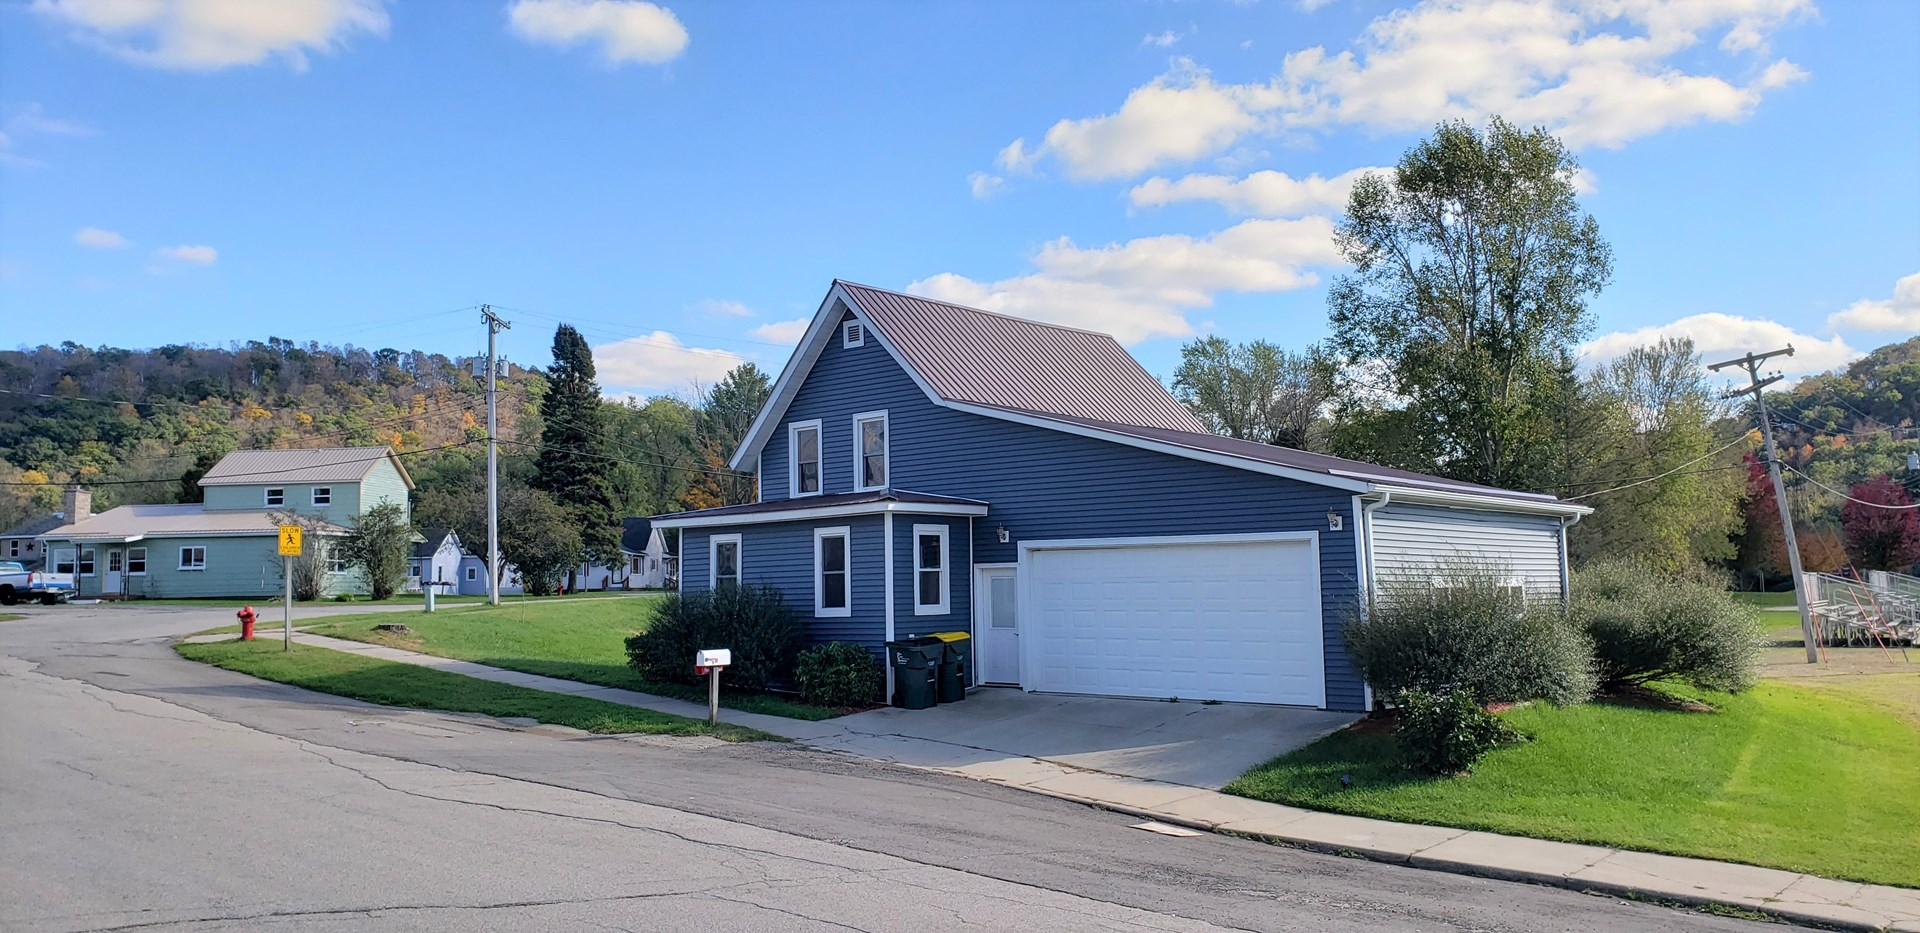 JUST SOLD!  ~ Home For Sale in Soldiers Grove SW Wisconsin